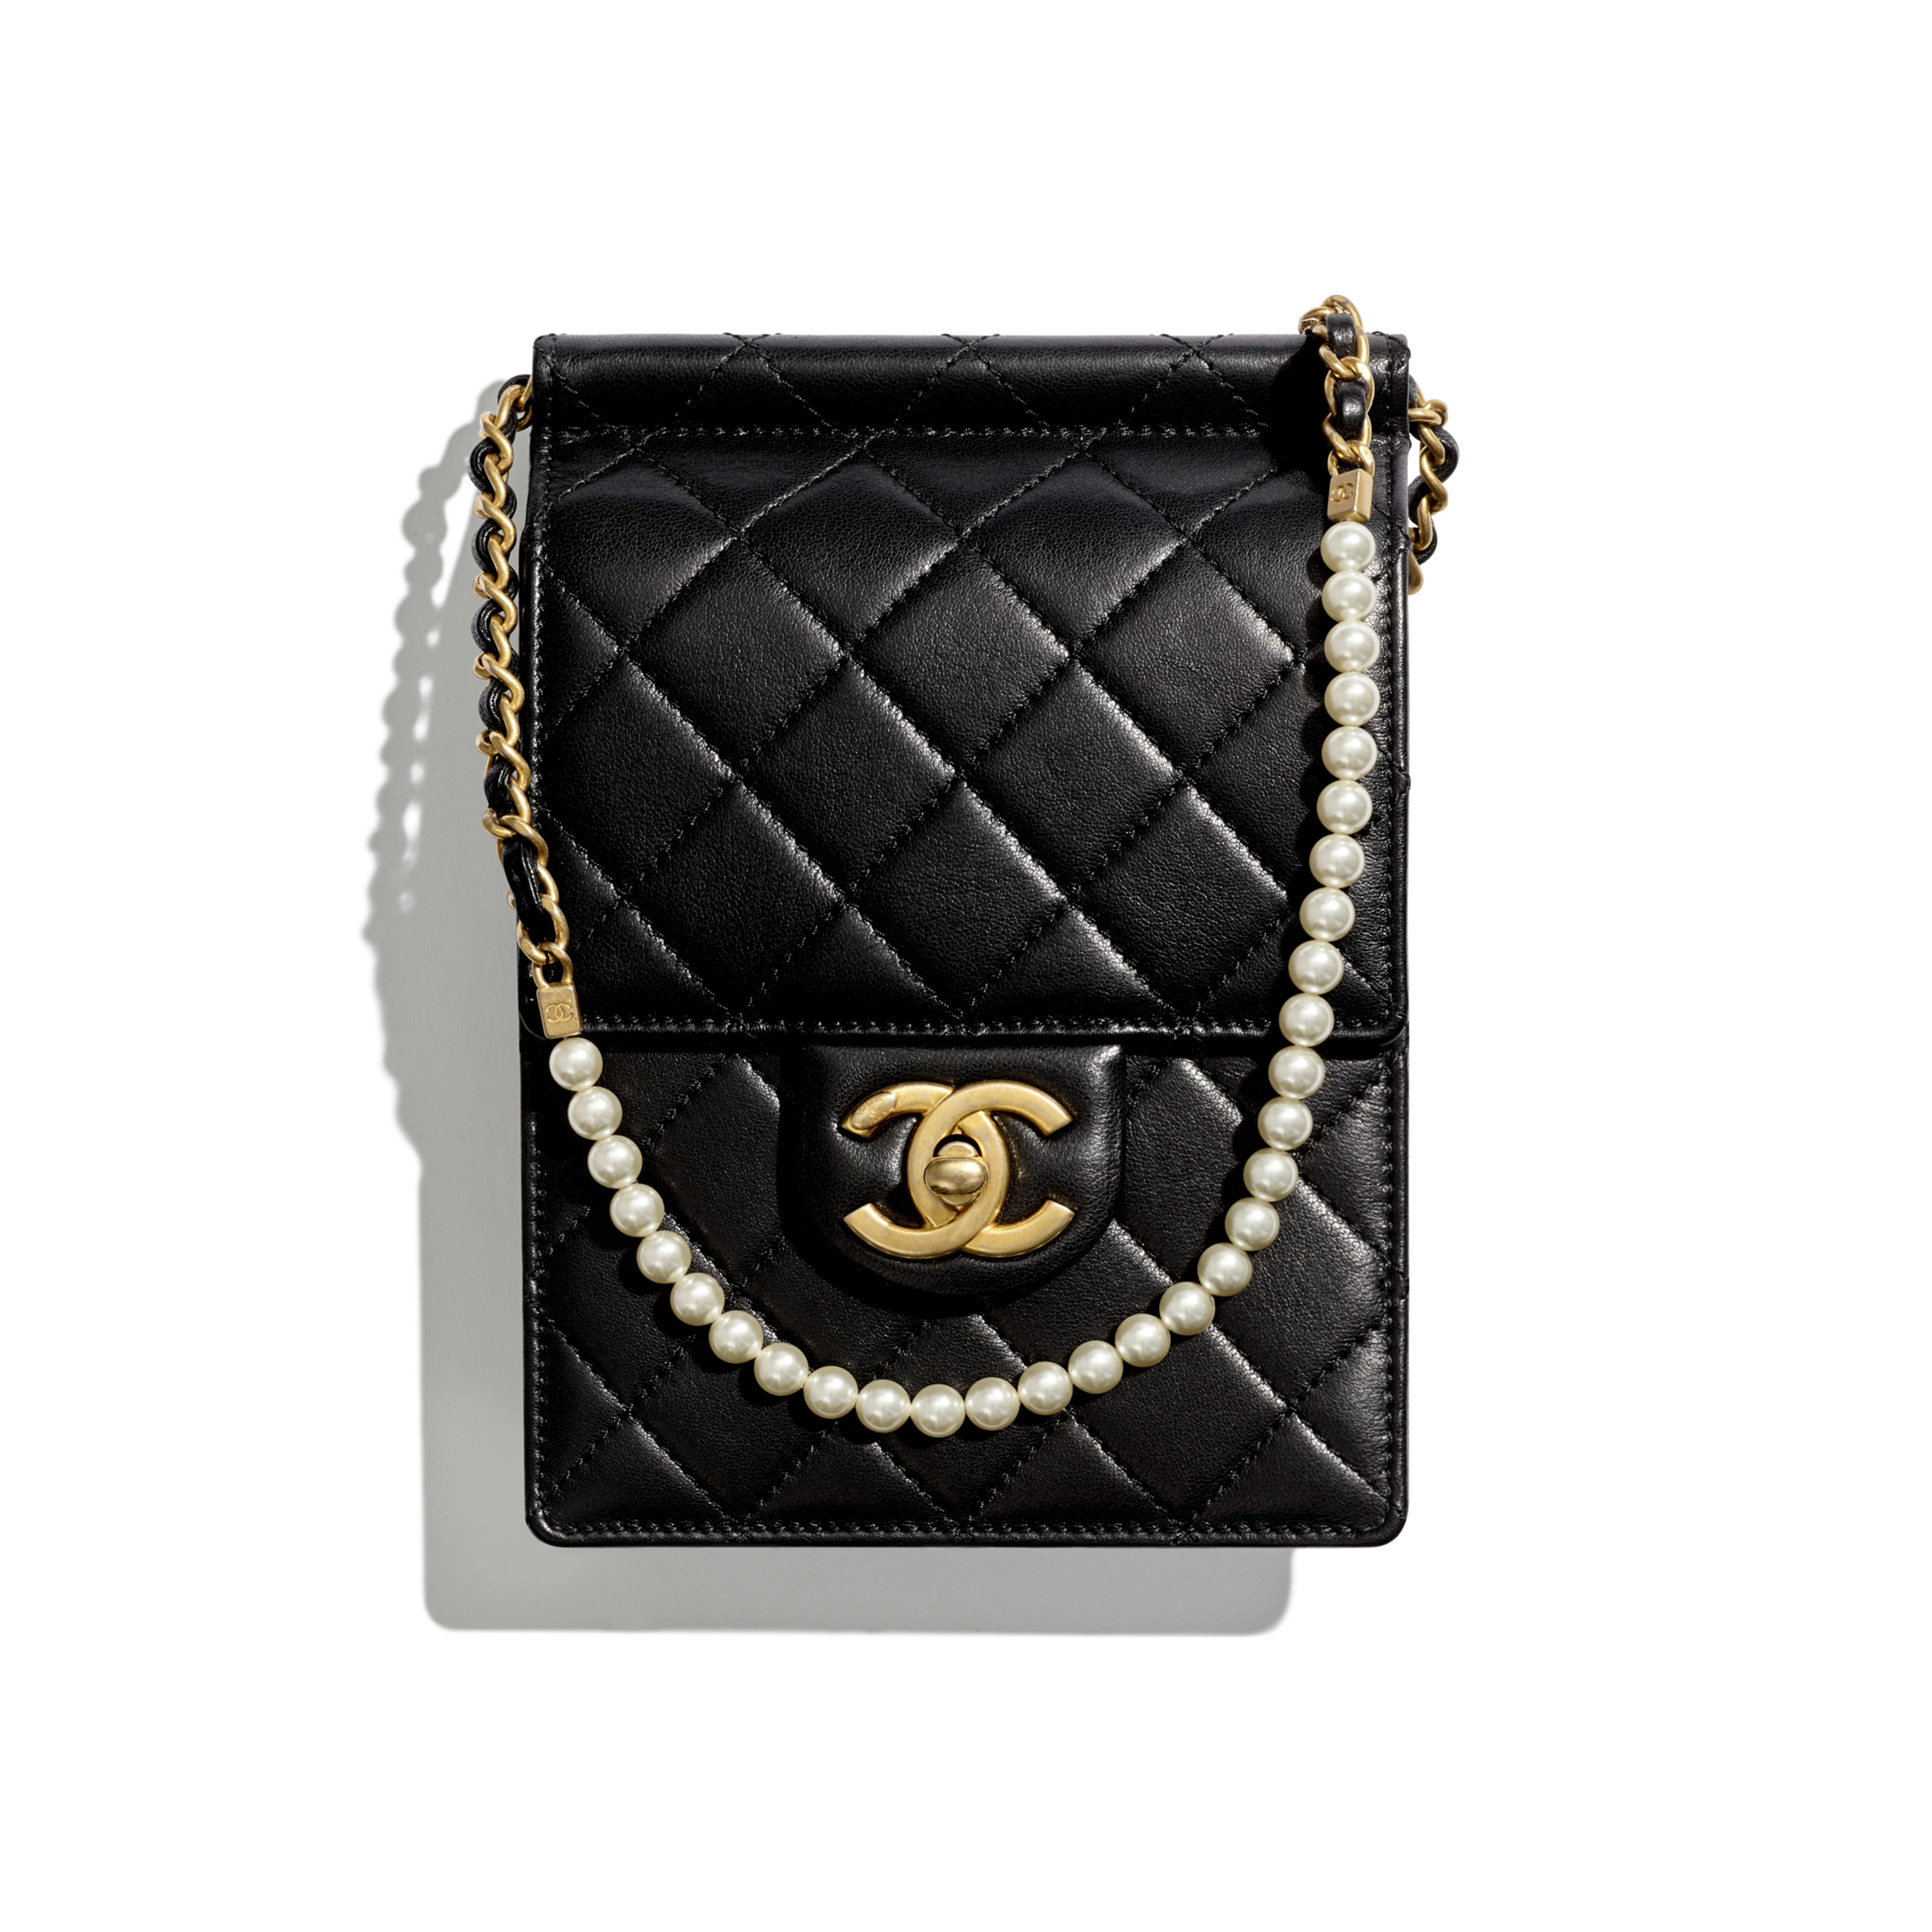 Clutch with Chain - Black - Lambskin, Imitation Pearls & Gold-Tone Metal - Default view - see full sized version